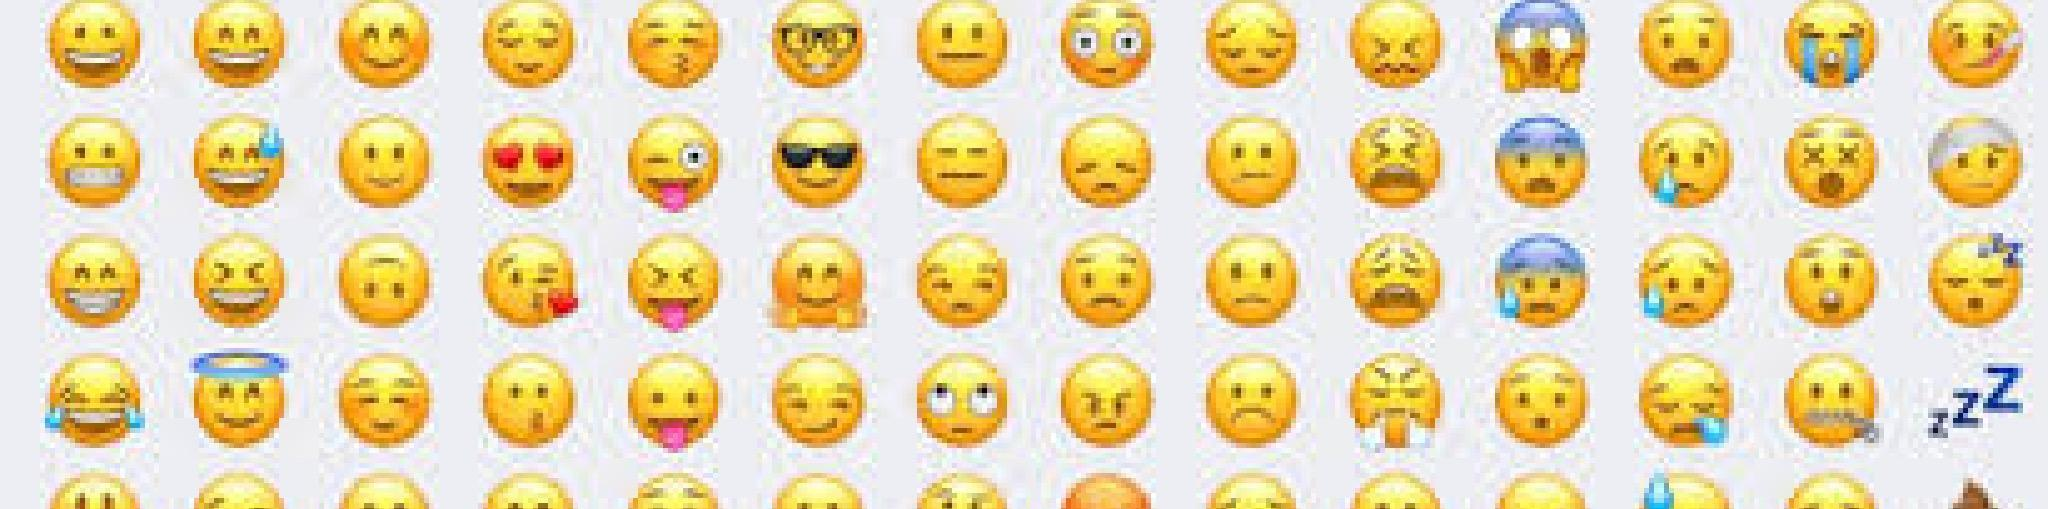 What emoji is the best out of these?